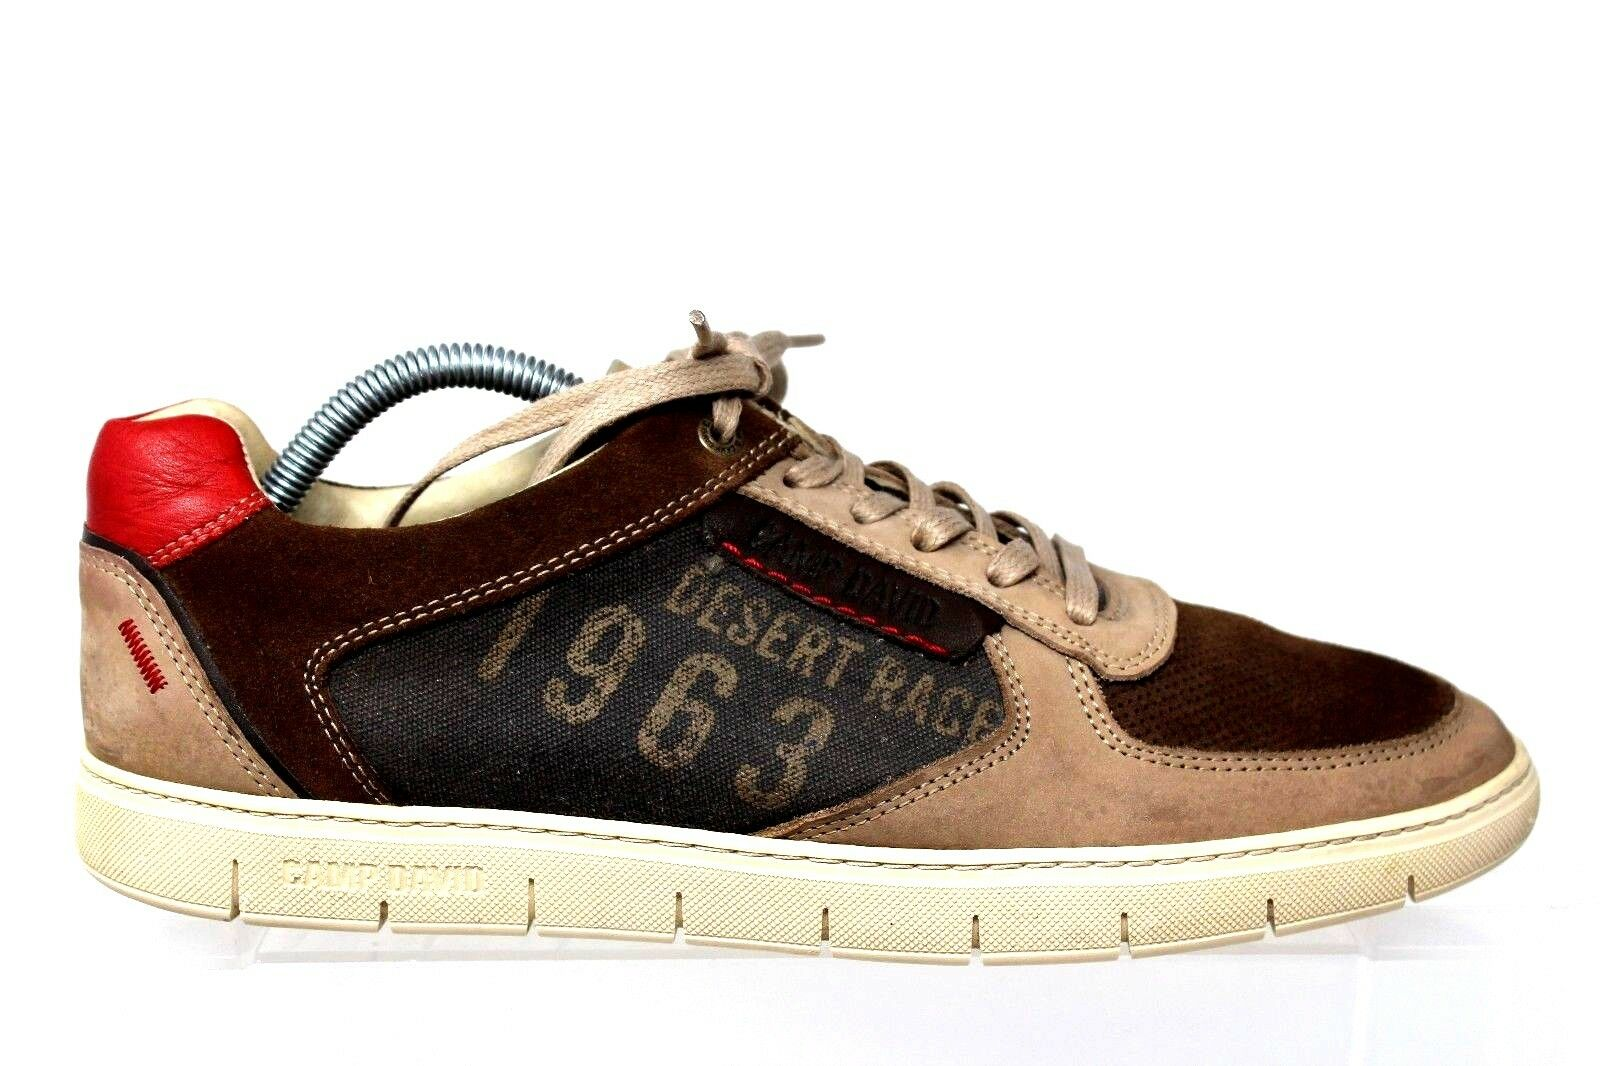 Camp David Desert Race 1963 Suede Leather Sneaker Mens 43 US 12